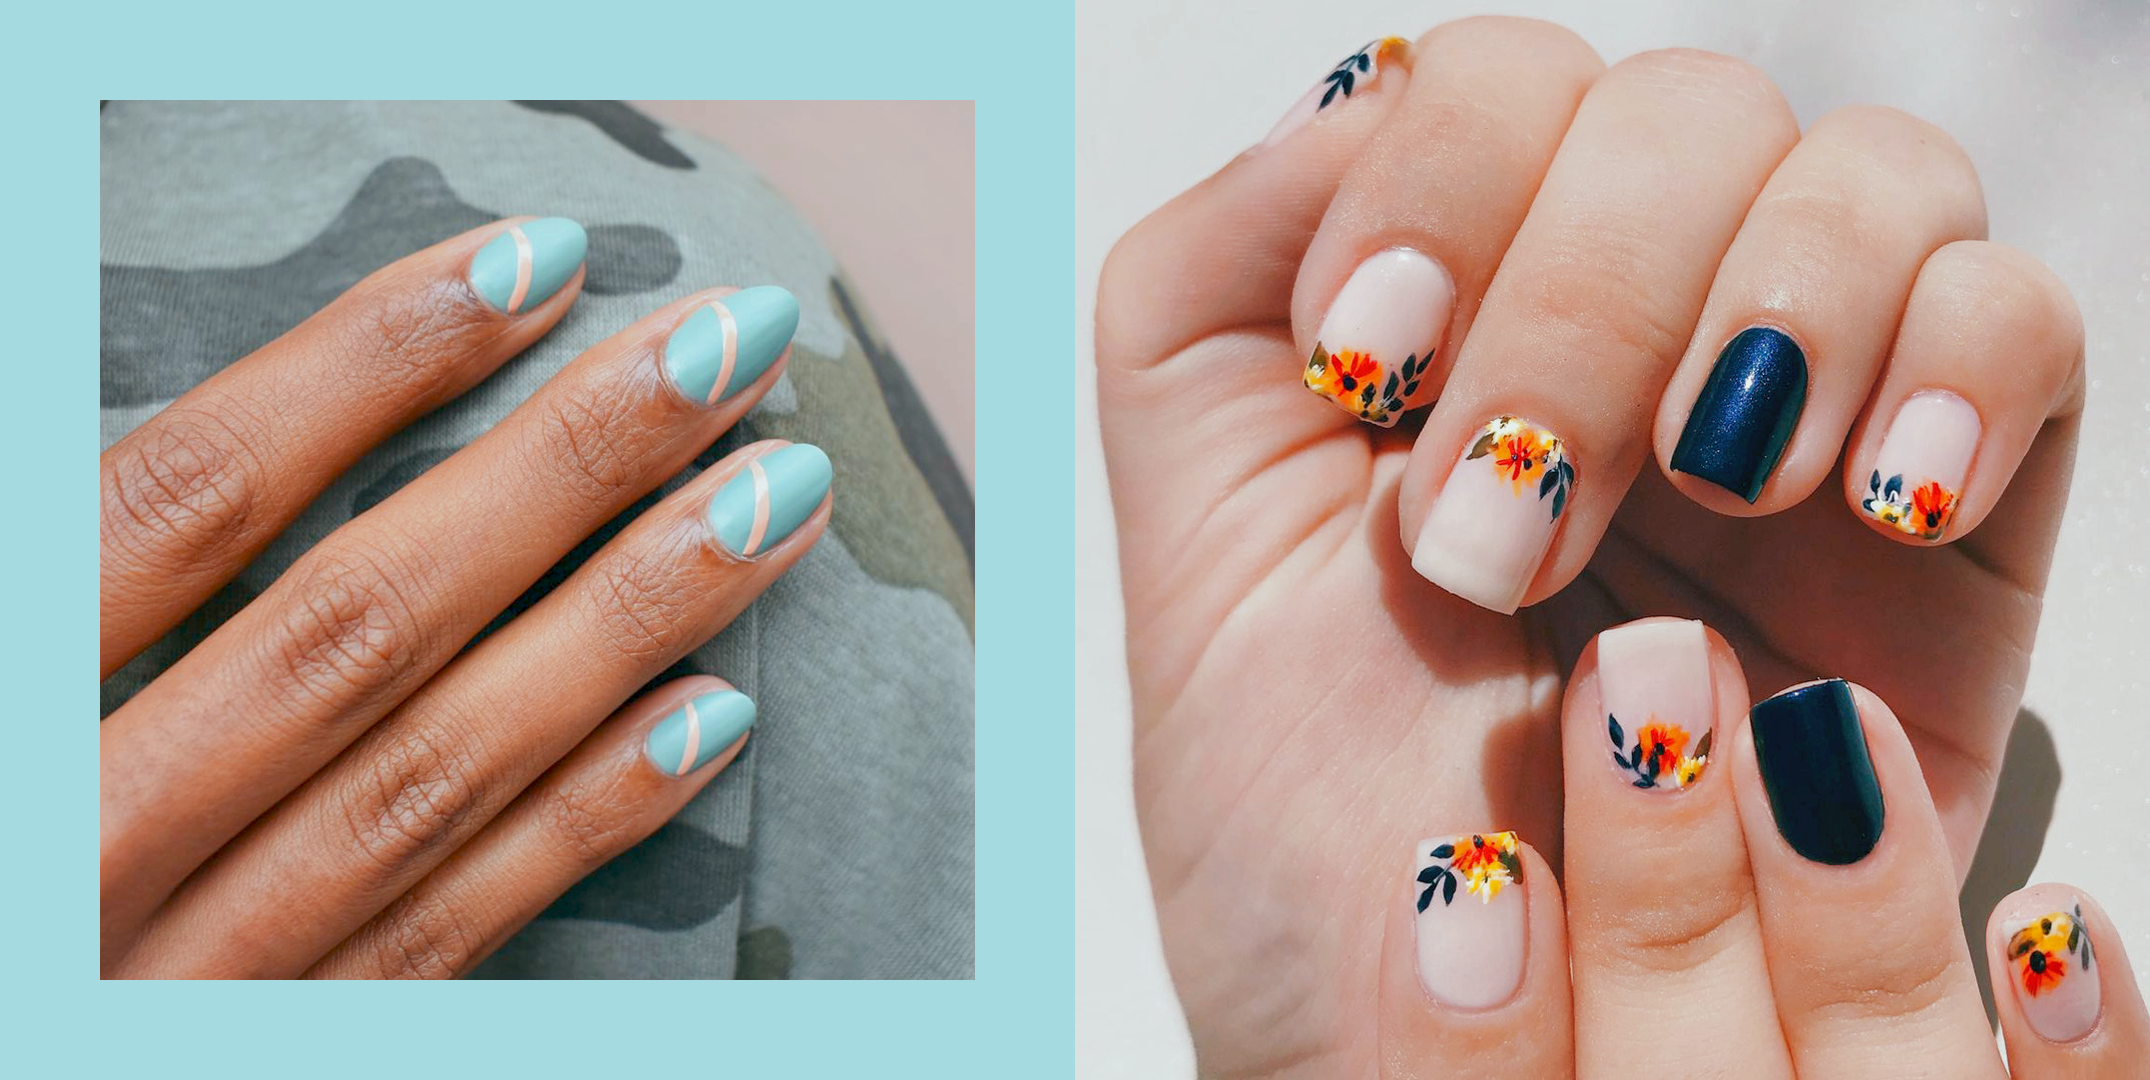 12 Best Nail Shapes of 2021 - What Nail Shape Is Best for Your Hands